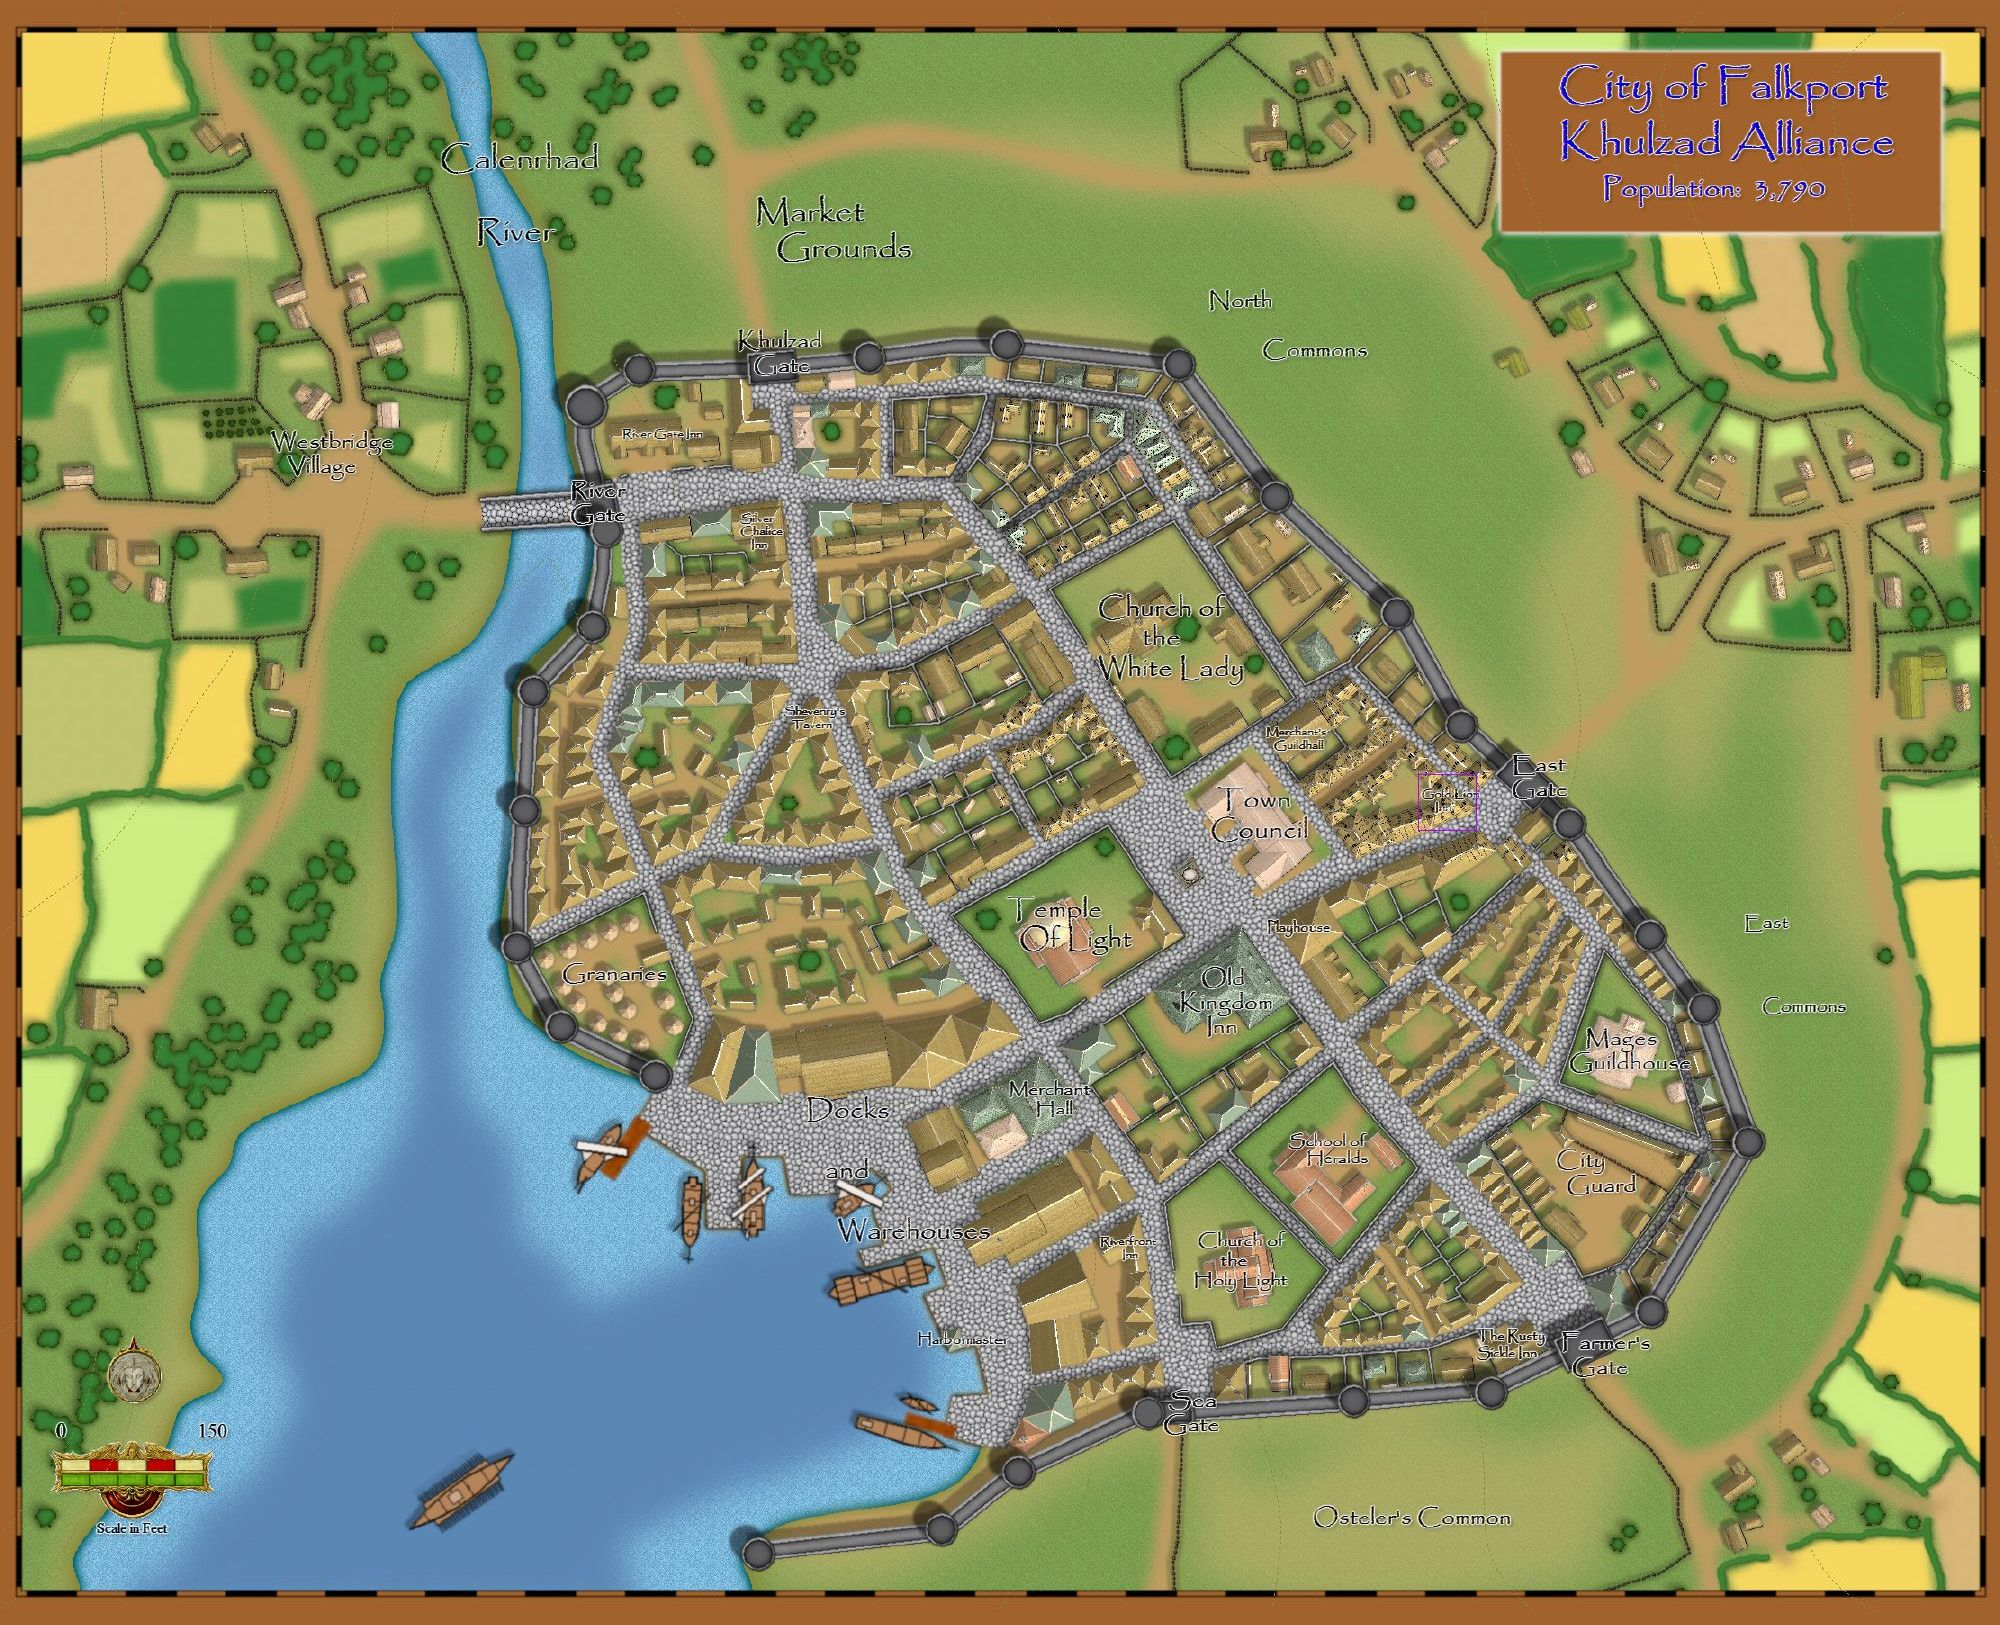 City of Falkport in the Free States.  Part of the Khulzad Alliance.